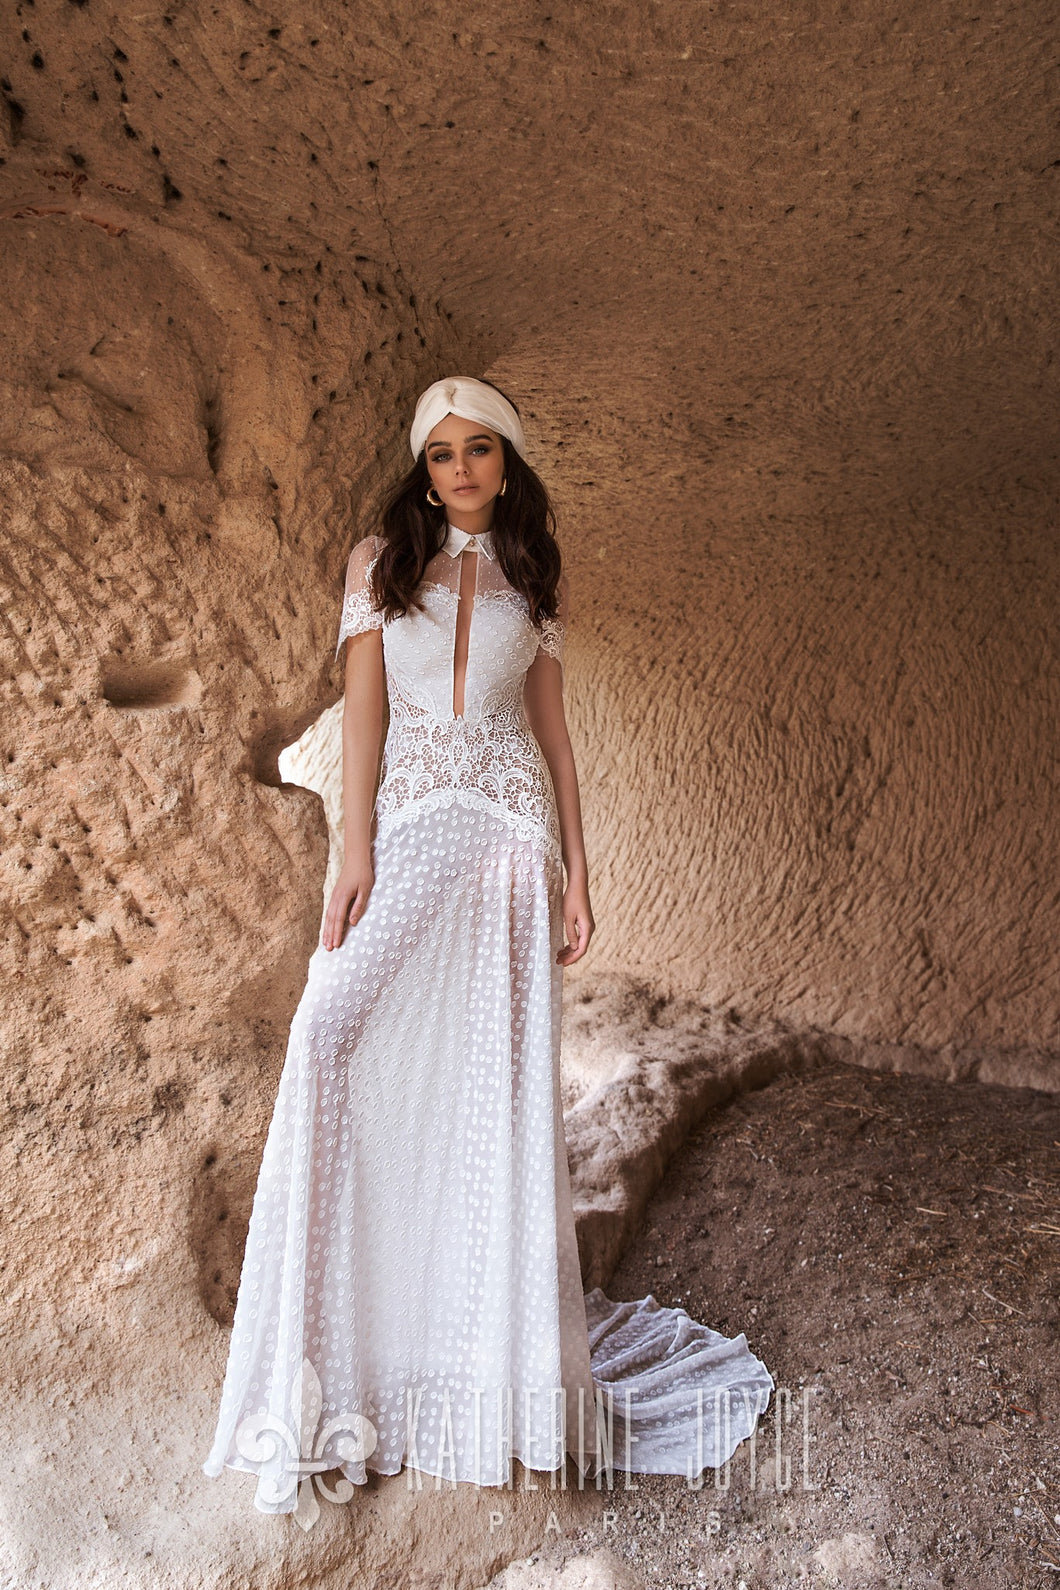 Wind Desert 'Bikum' Katherine Joyce Paris RTW T 213-209 Ready To Wear European Bridal Wedding Gown Designer Philippines